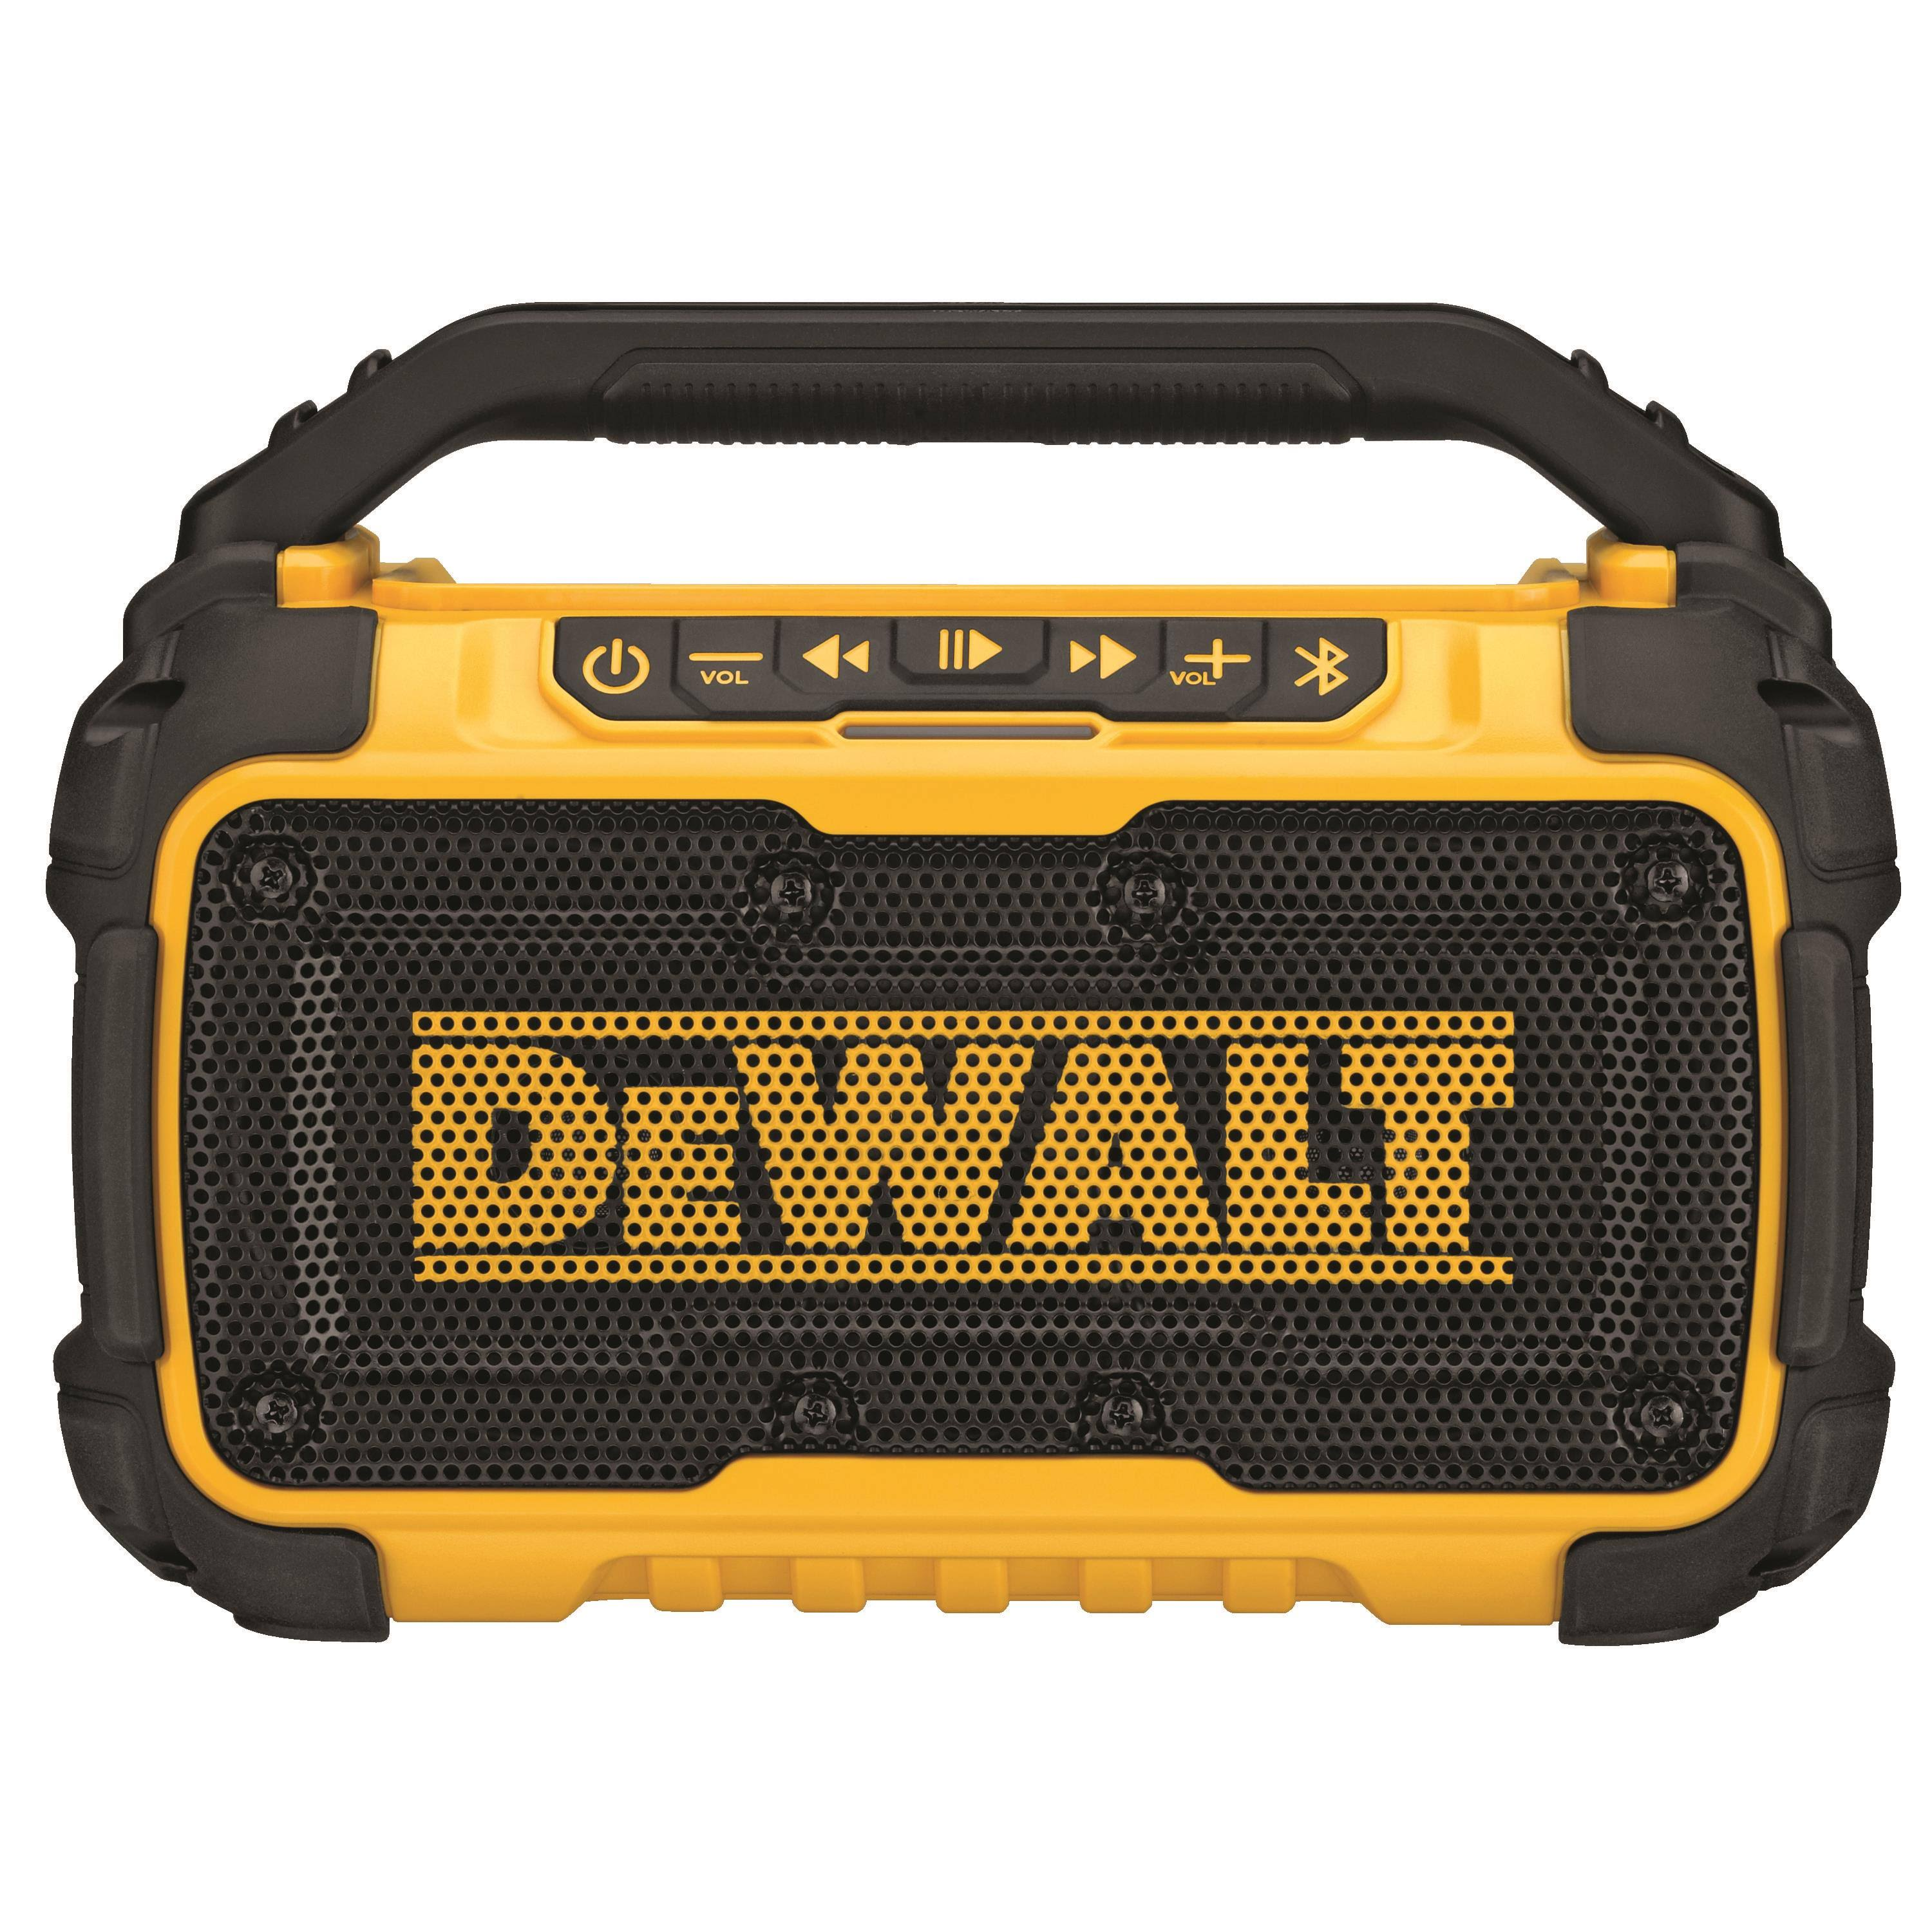 DeWalt 20V MAX Lithium-Ion Jobsite Bluetooth Speaker